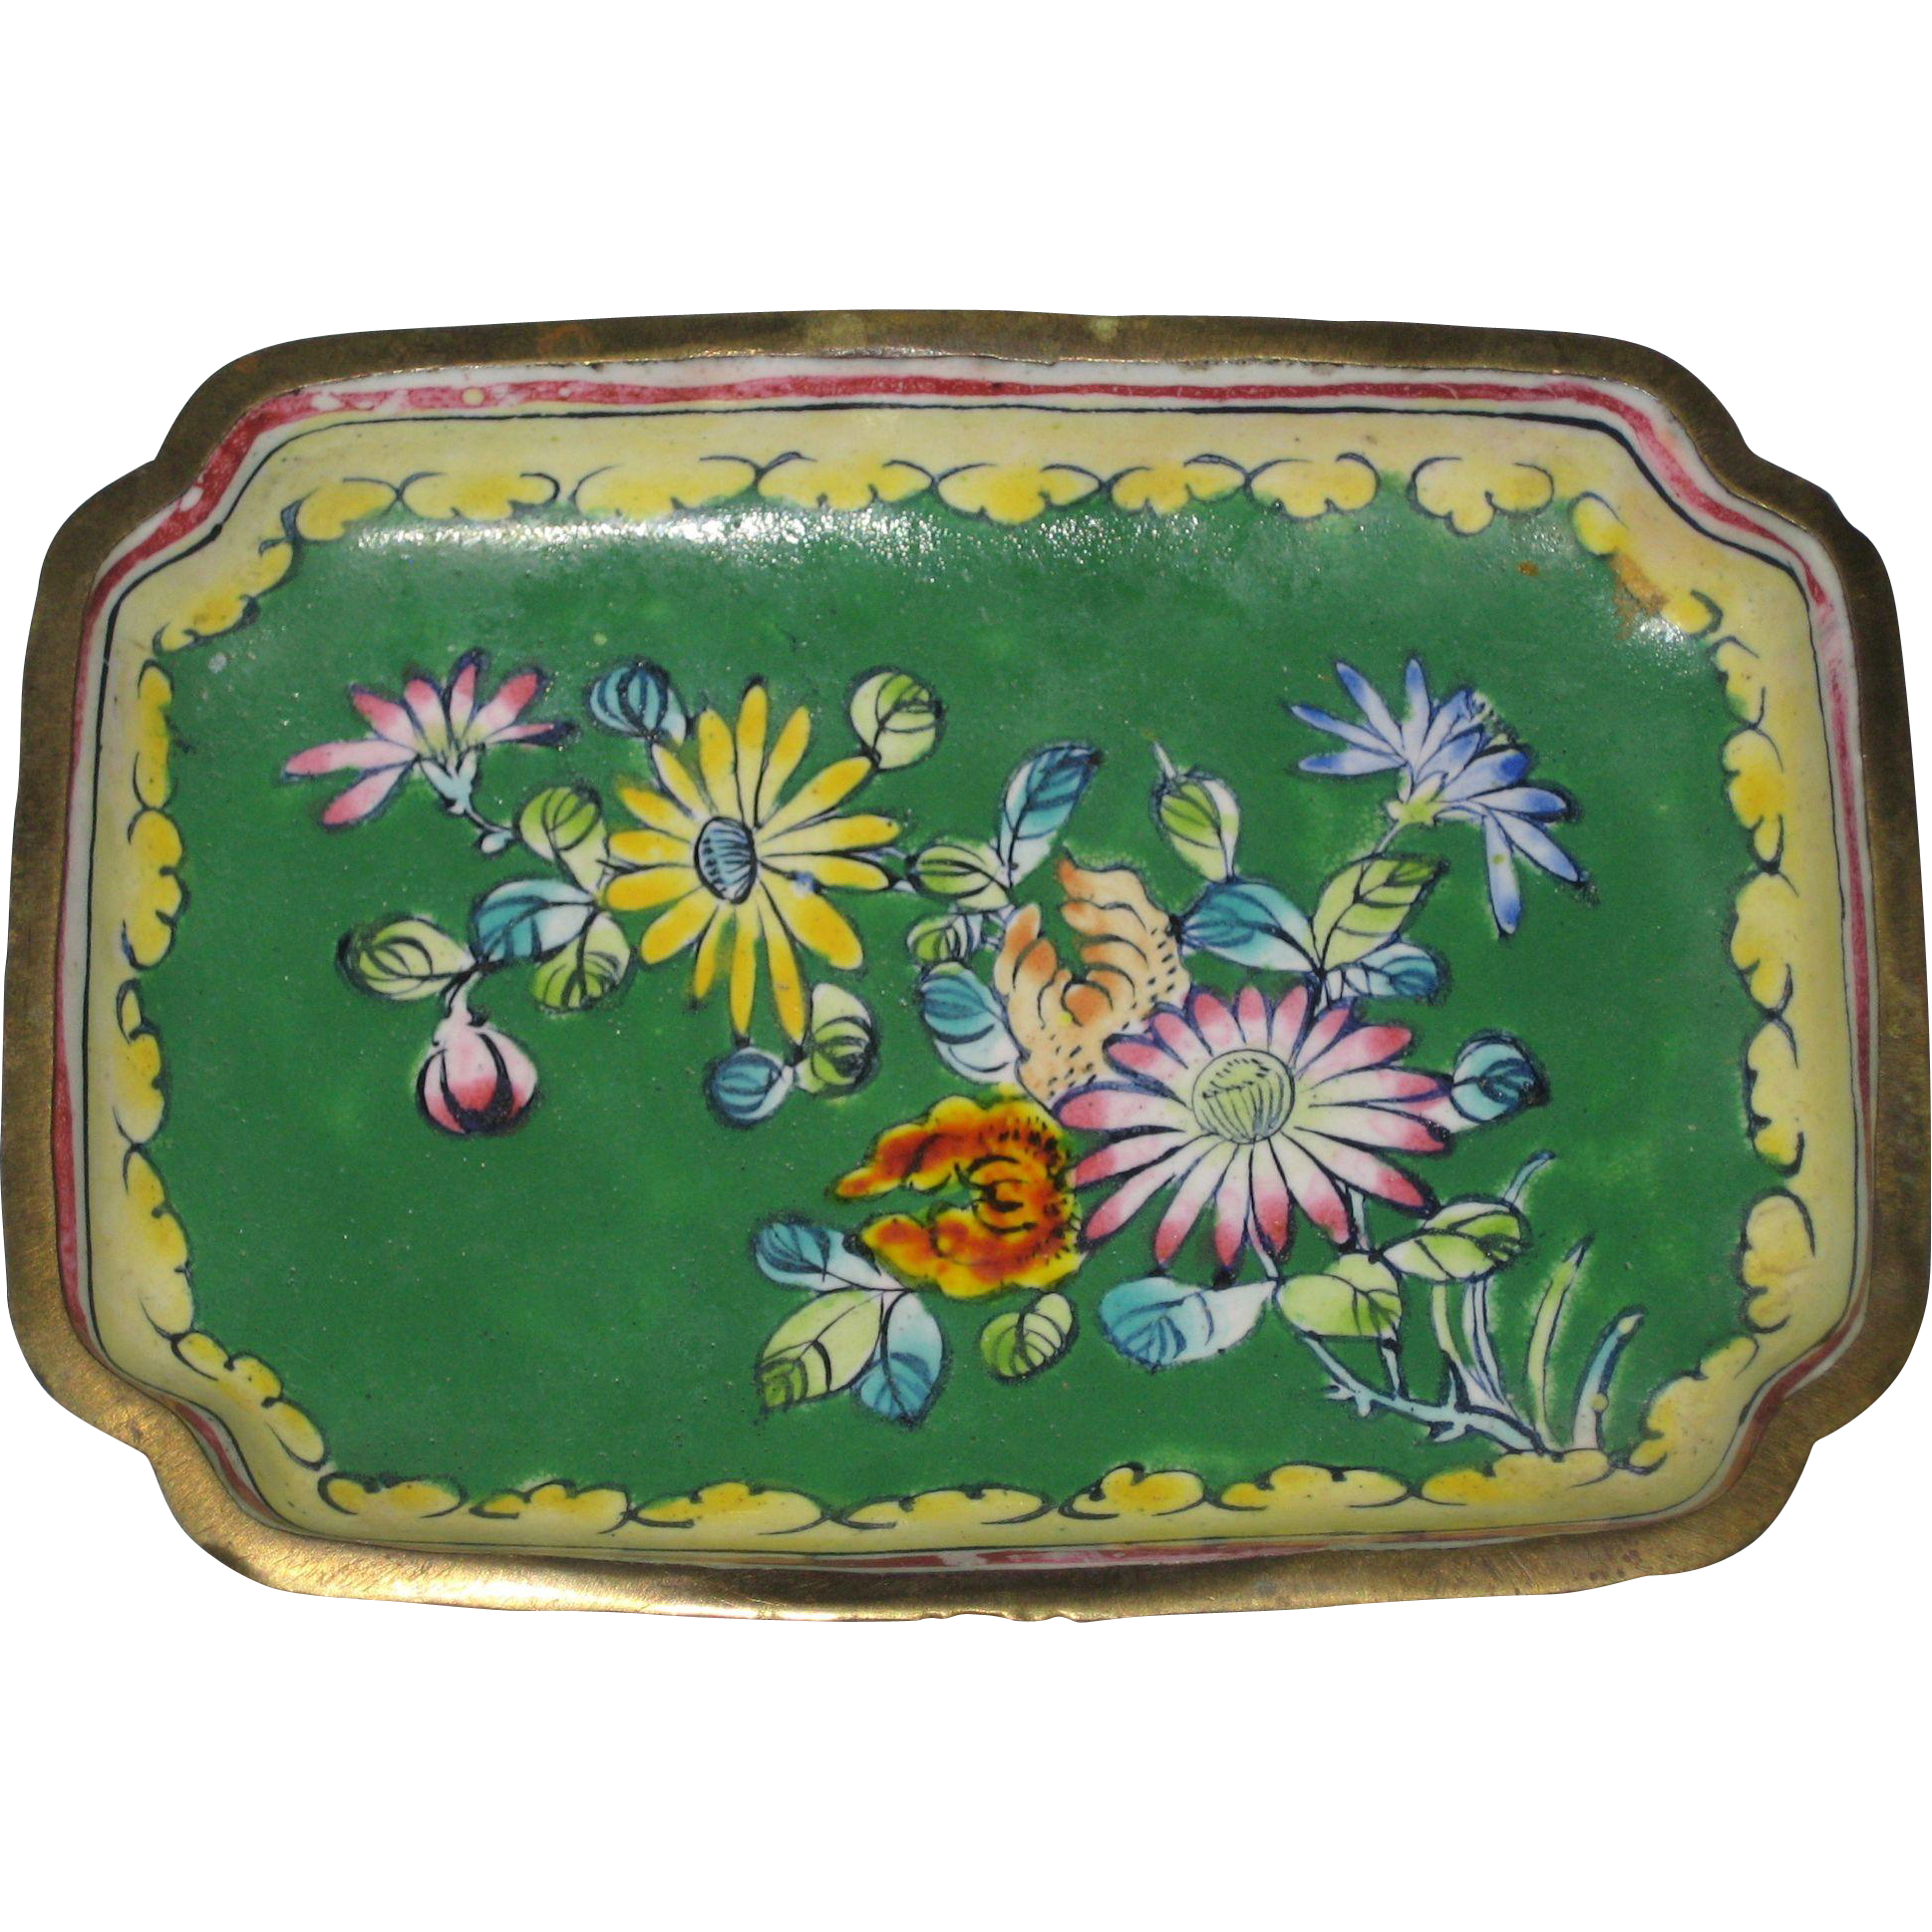 Miniature Floral Chinese Enamel over Copper Tray - Circa 1930